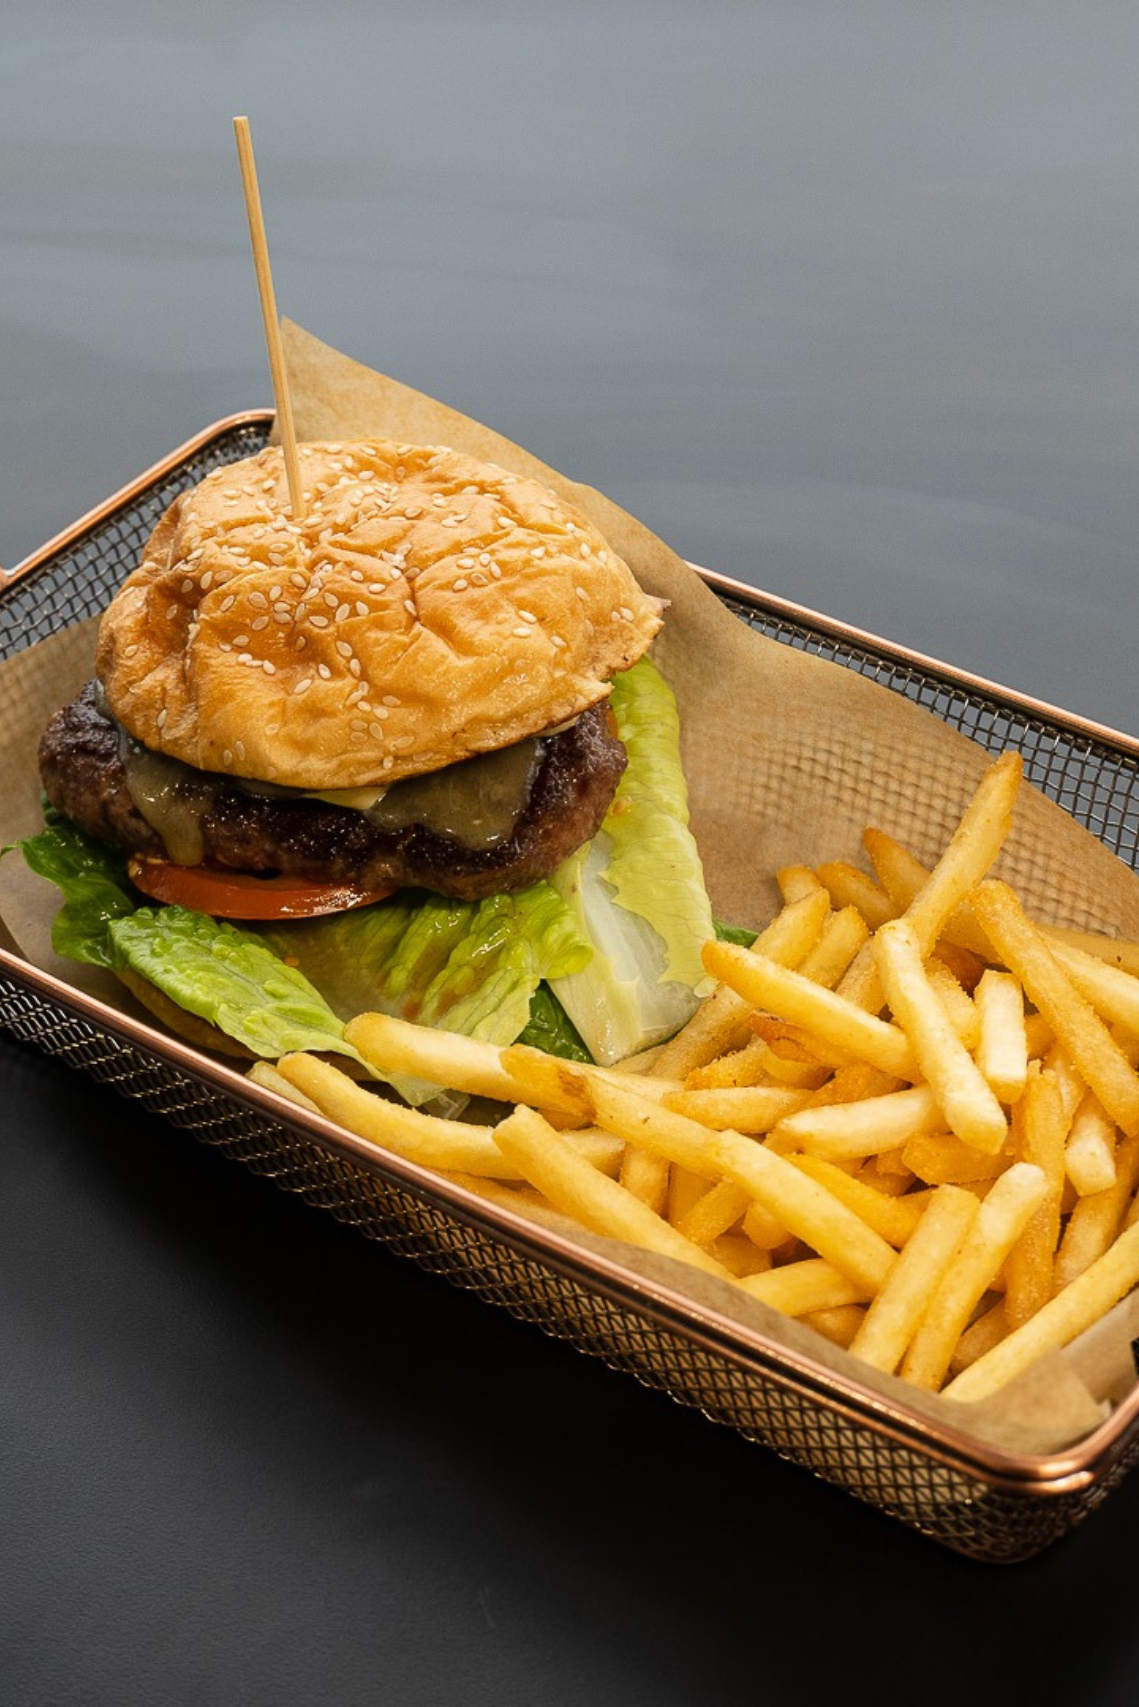 Commune burger and fries